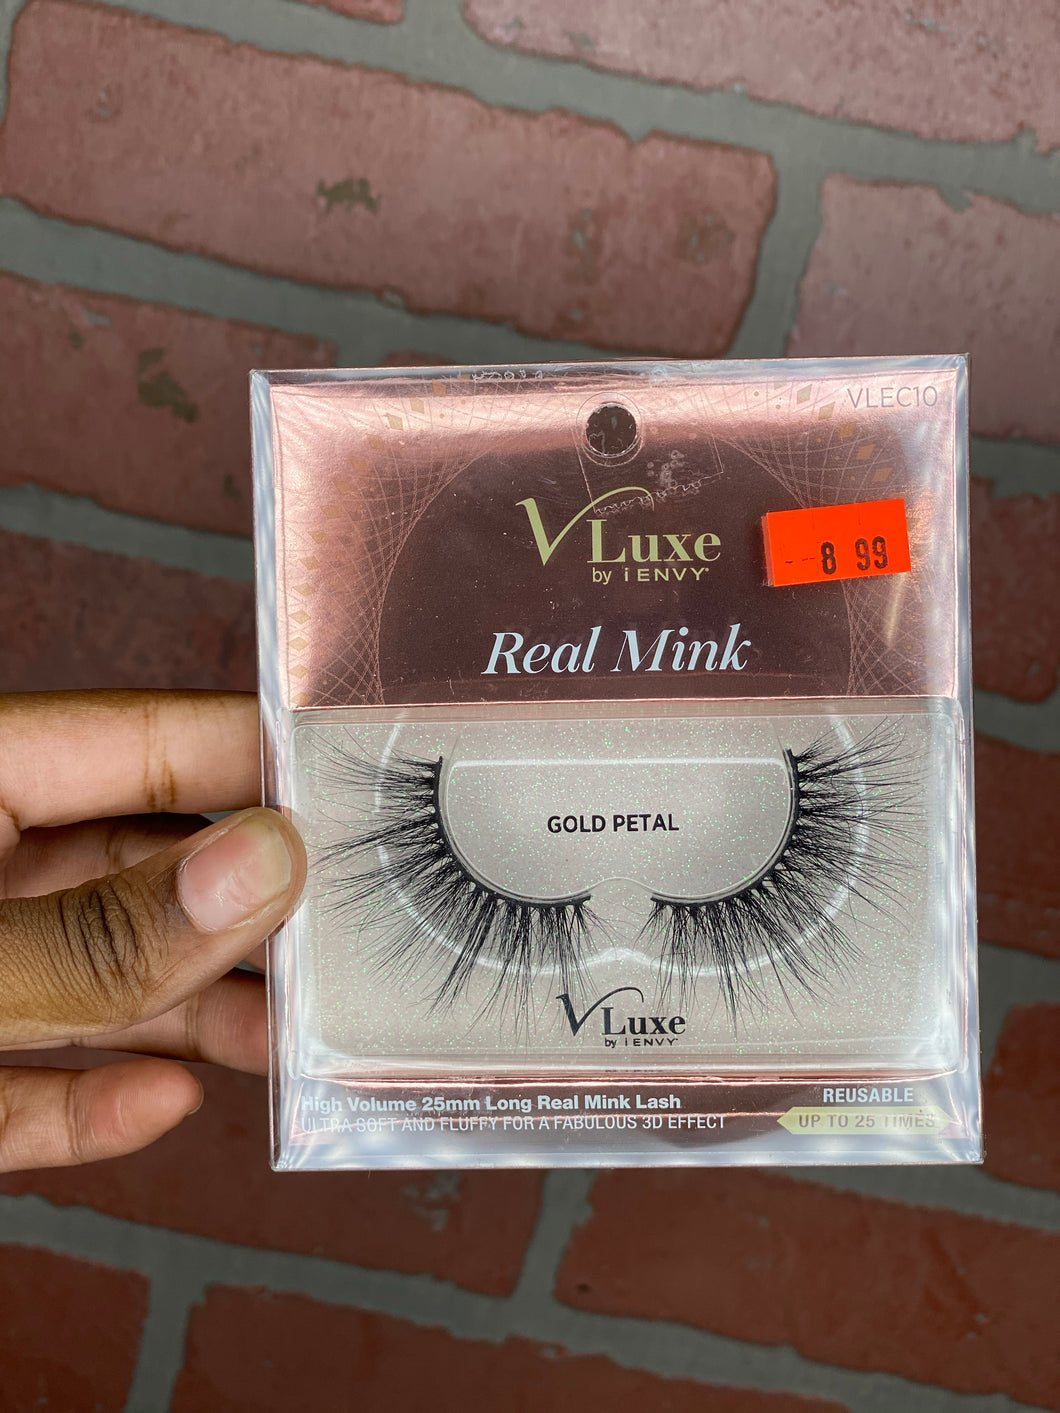 V luxe real mink lashes